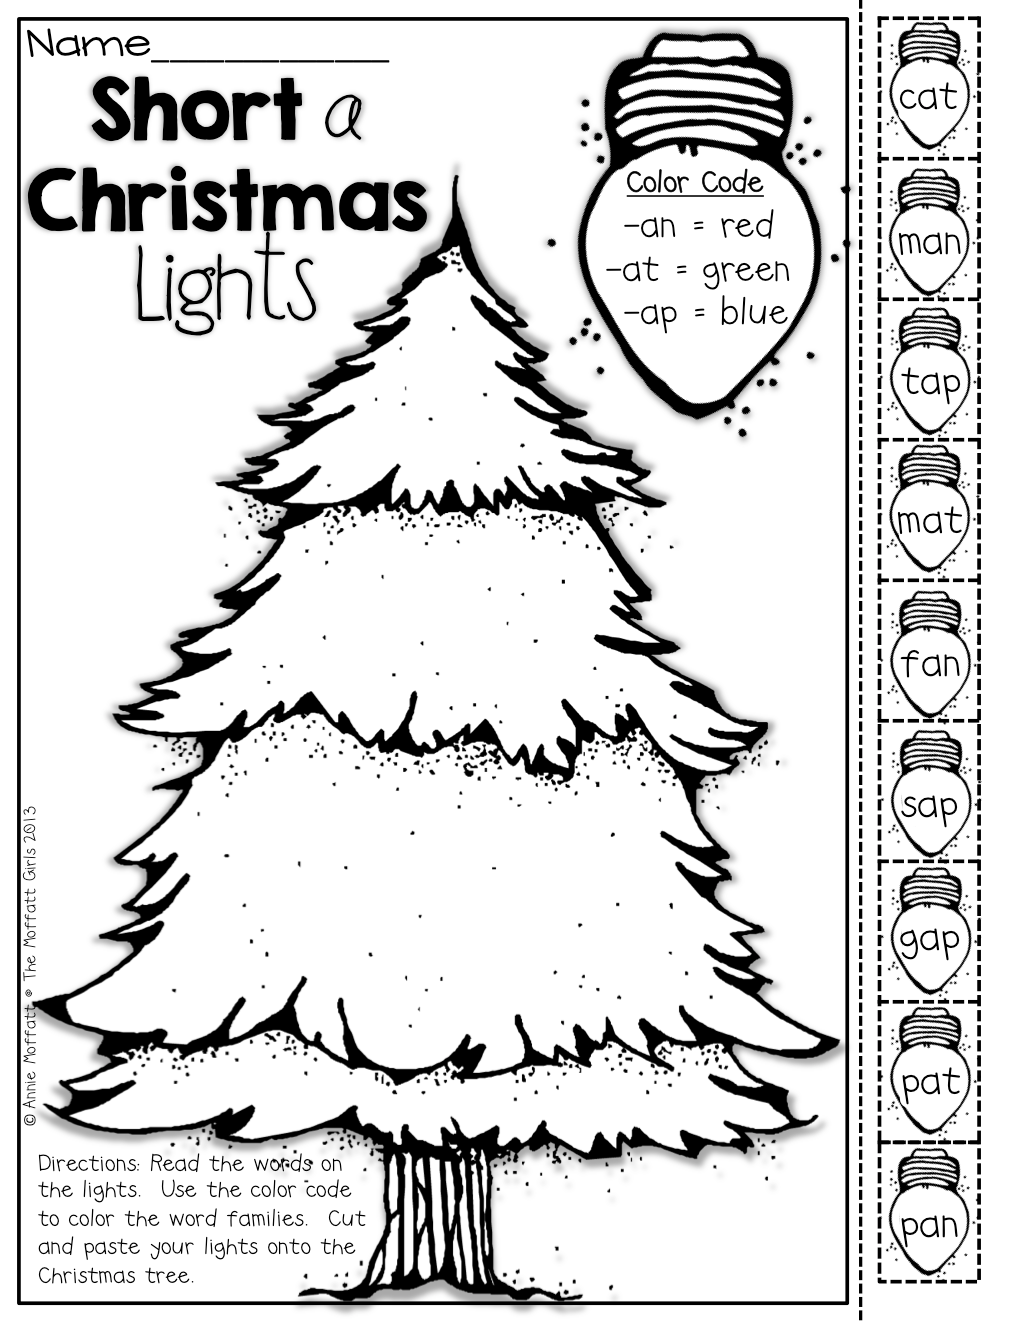 Color The Christmas Lights By Word Family Cut And Paste The Lights Onto The Christmas Tree